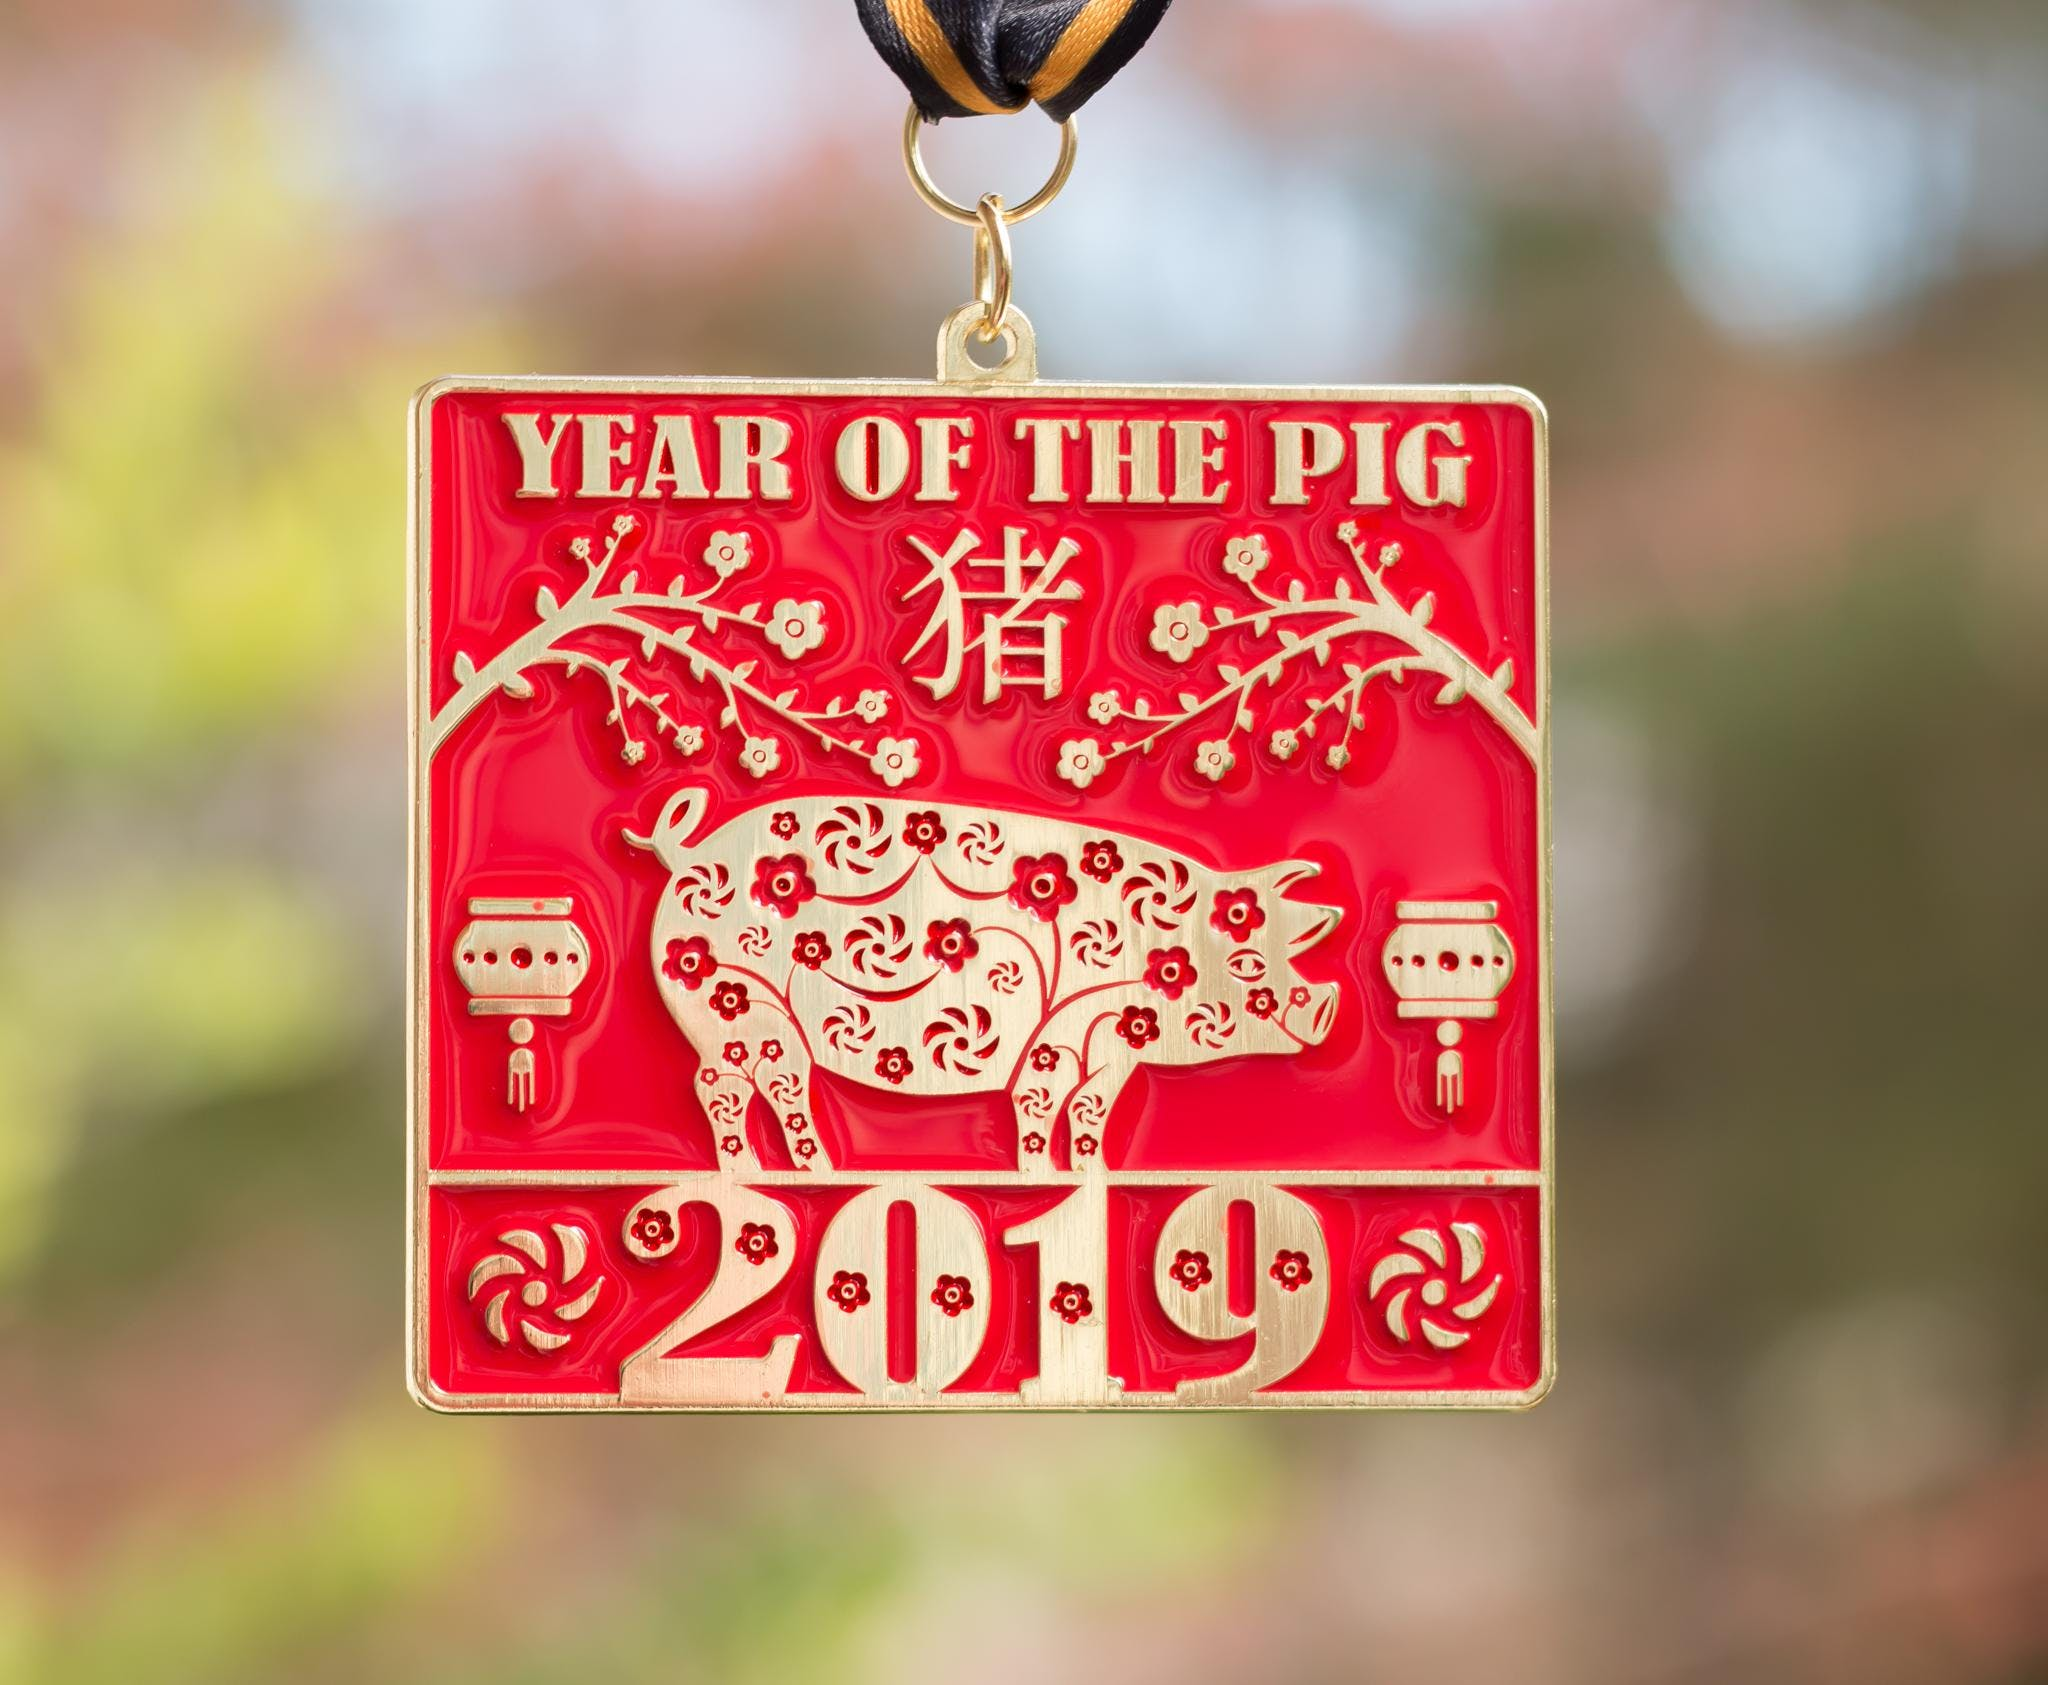 2019 The New Year Running/Walking Challenge-Year of the Pig -Phoenix